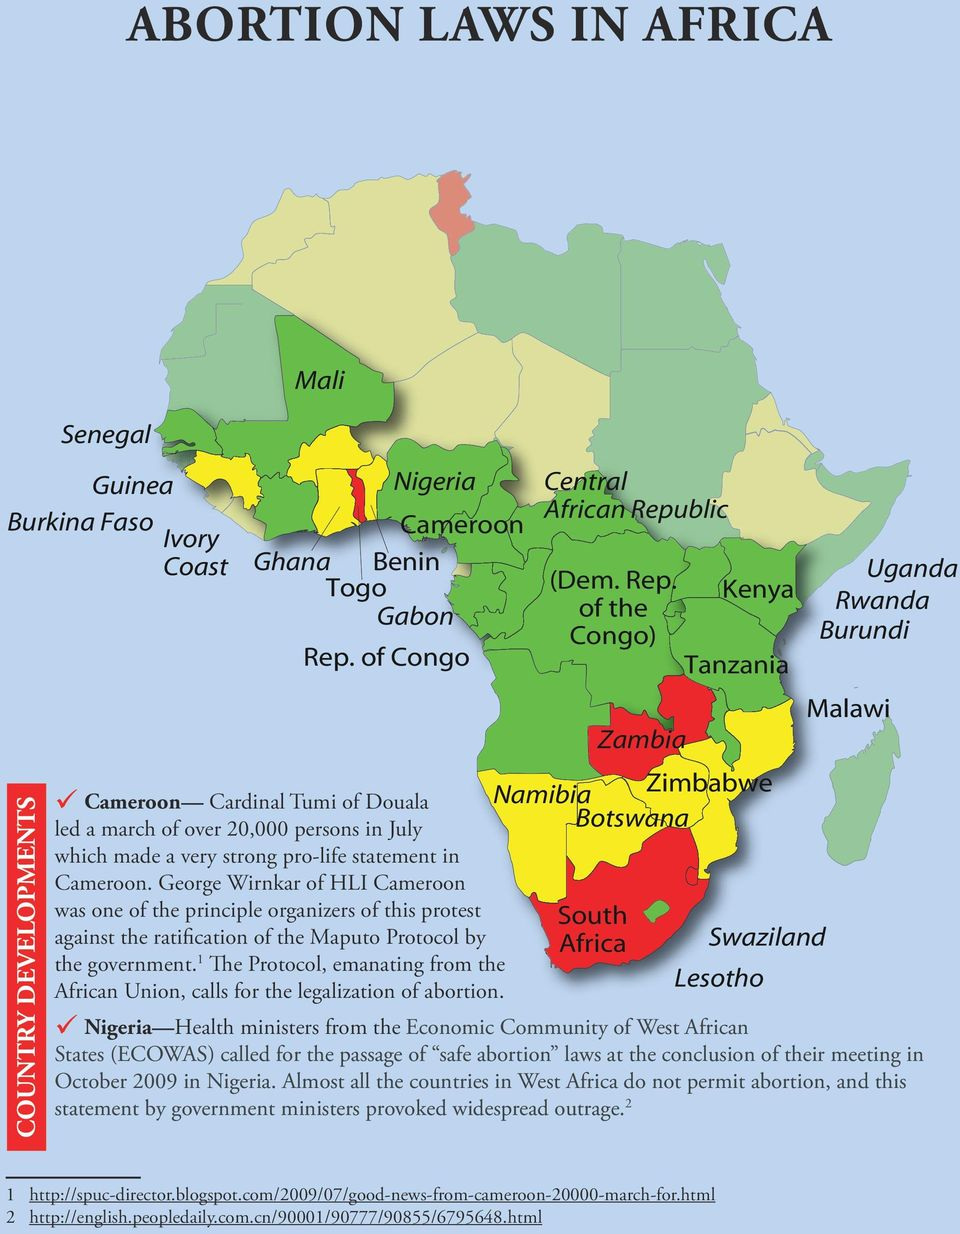 government 1 The Protocol, emanating from the African Union, calls for the legalization of abortion Central African Republic (Dem Rep of the Congo) Zambia Kenya Tanzania Namibia Zimbabwe Botswana